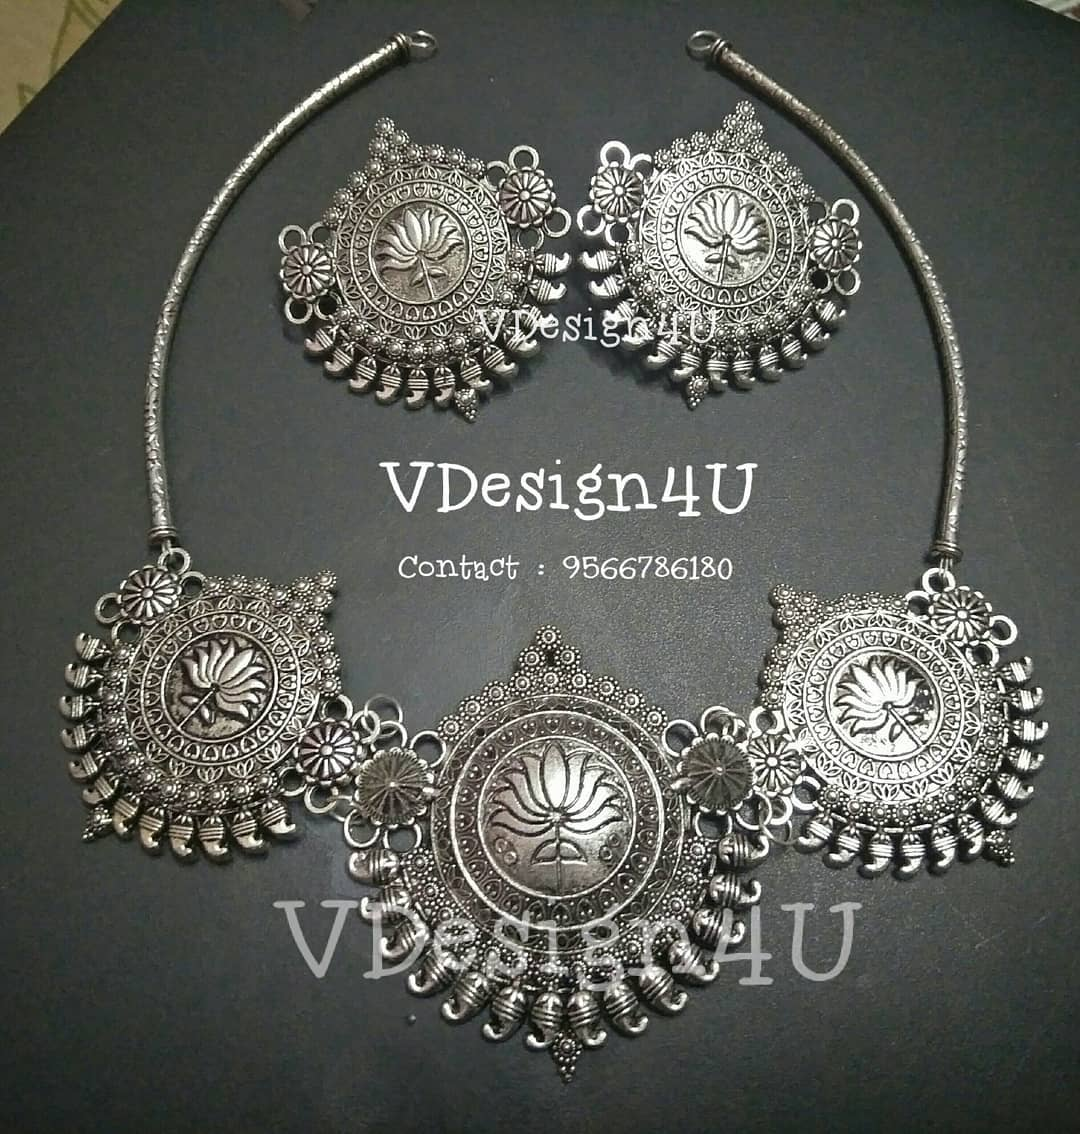 Trendy Silver Necklace From Vdesign4U